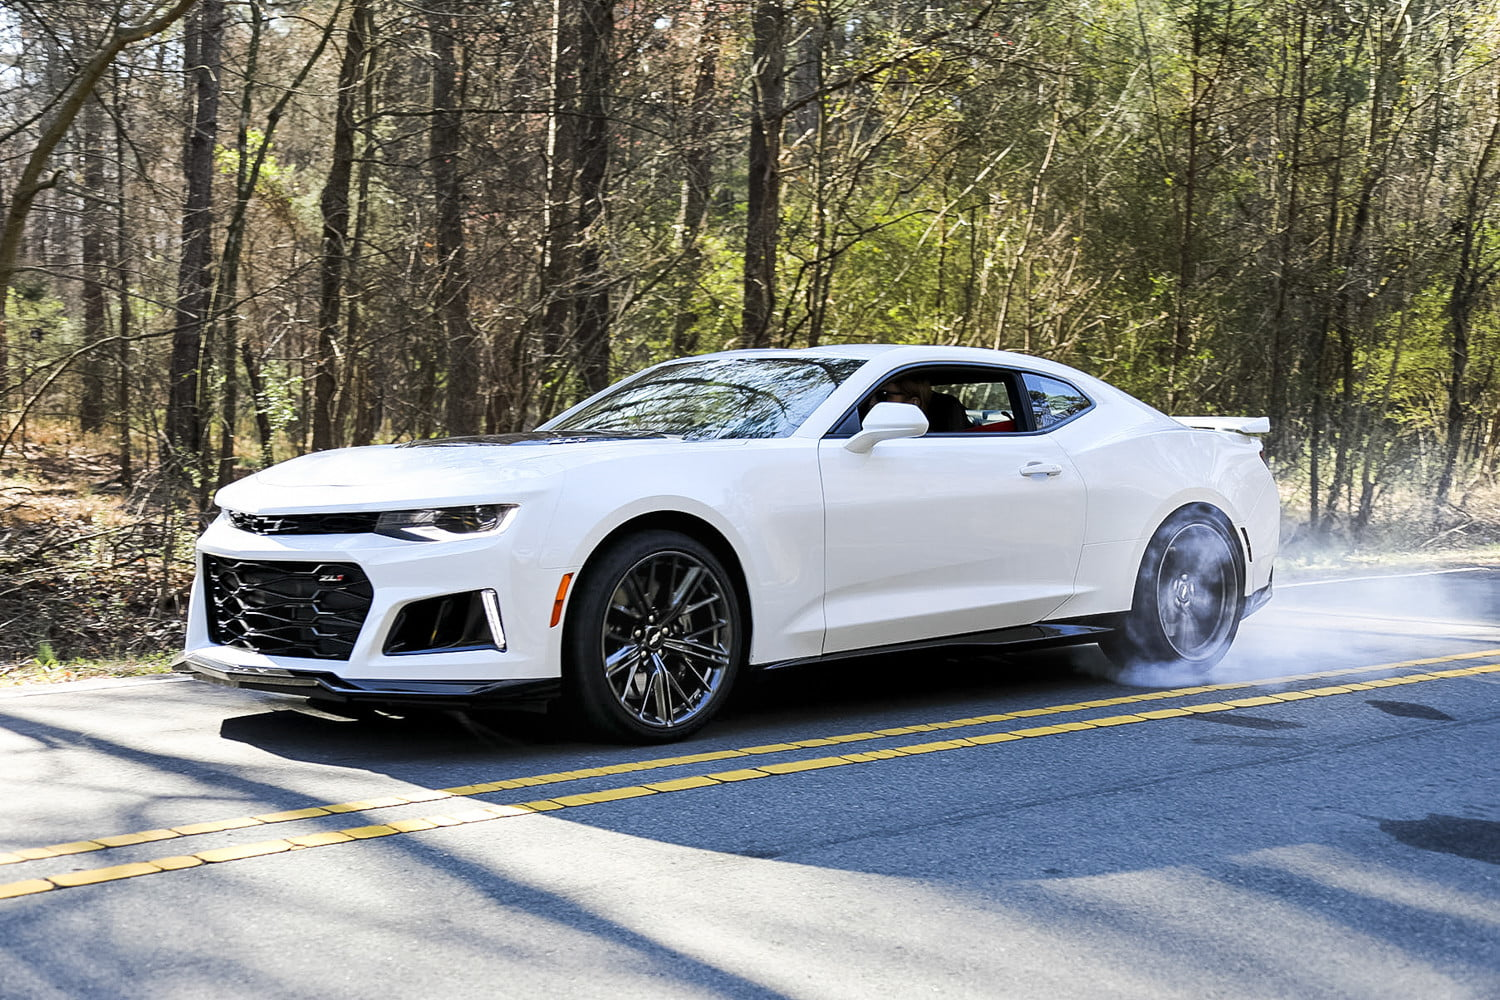 2017 Chevrolet Camaro Zl1 First Drive Digital Trends